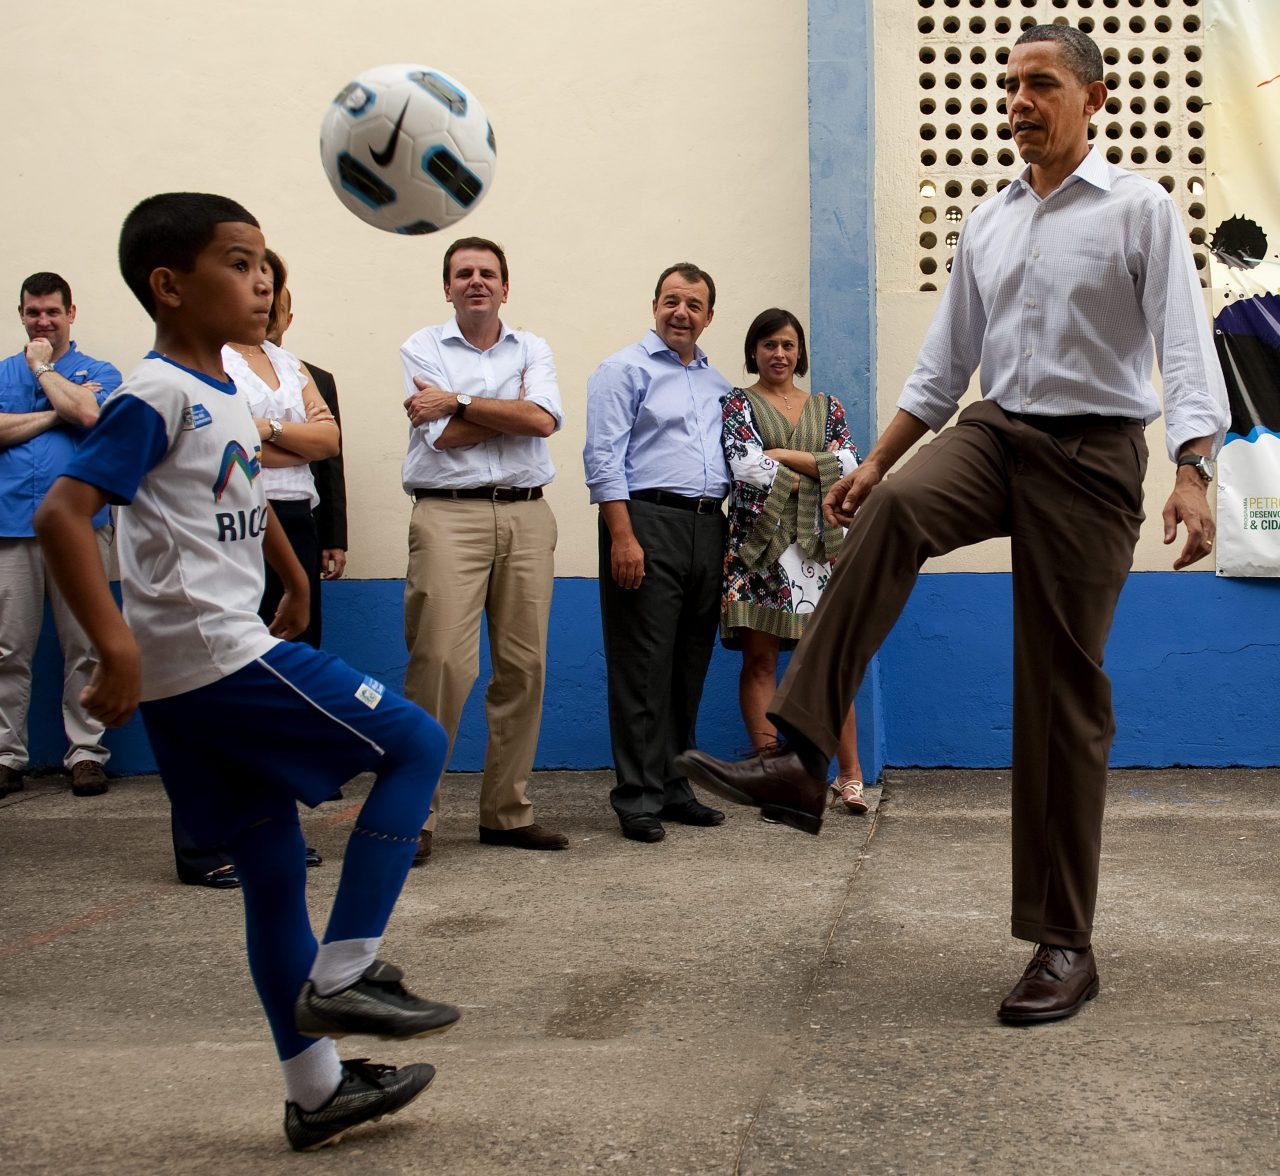 """U.S. President Barack Obama plays soccer while visiting the """"City of God"""" favela in Rio de Janiero, Brazil, on March 20, 2011. (Saul Loeb/Getty Images)"""